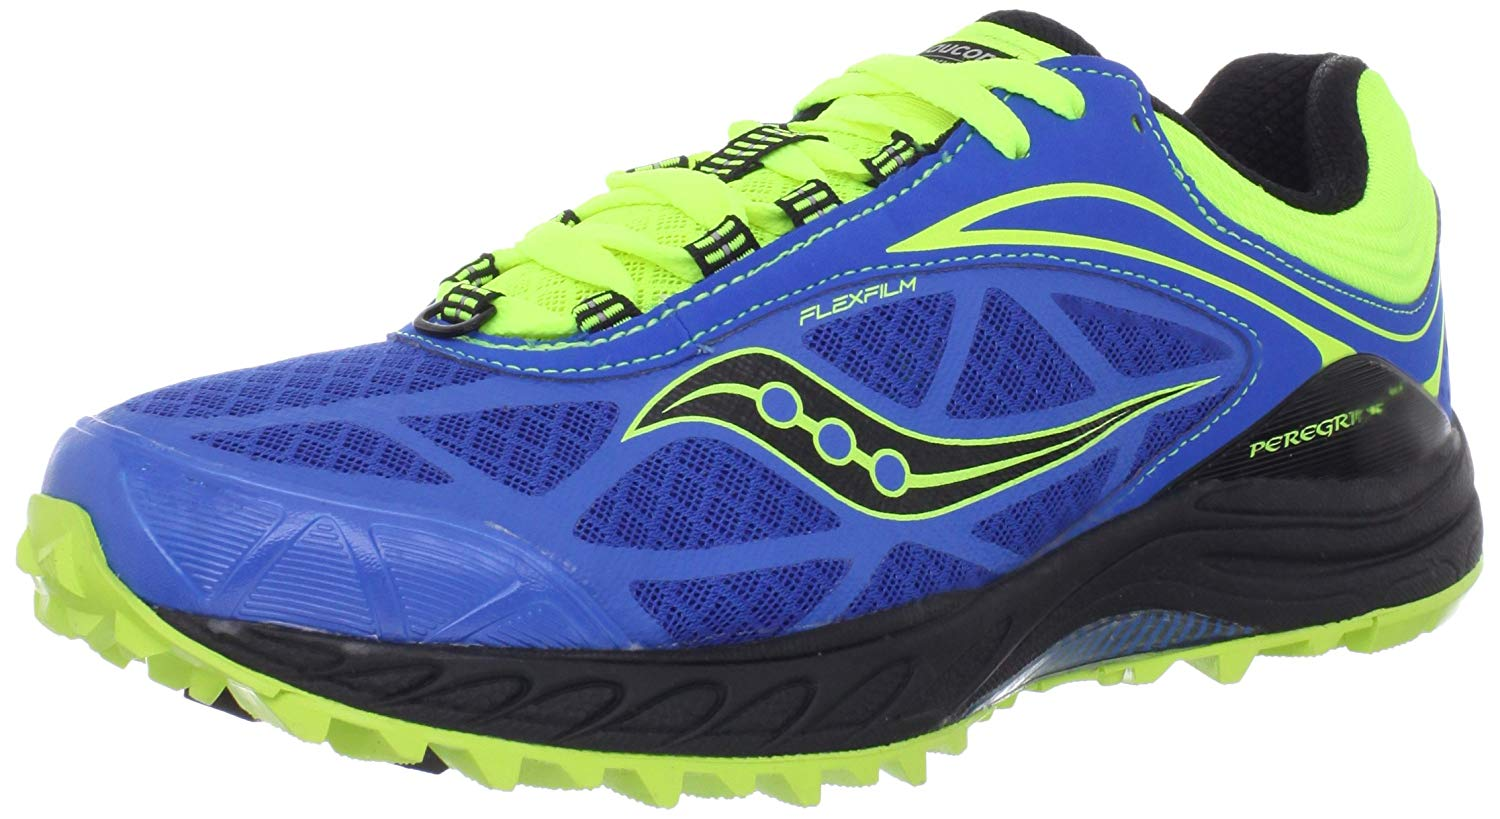 a9ad9f13b188 Get Quotations · Saucony Men s Peregrine 3 Trail Running Shoe